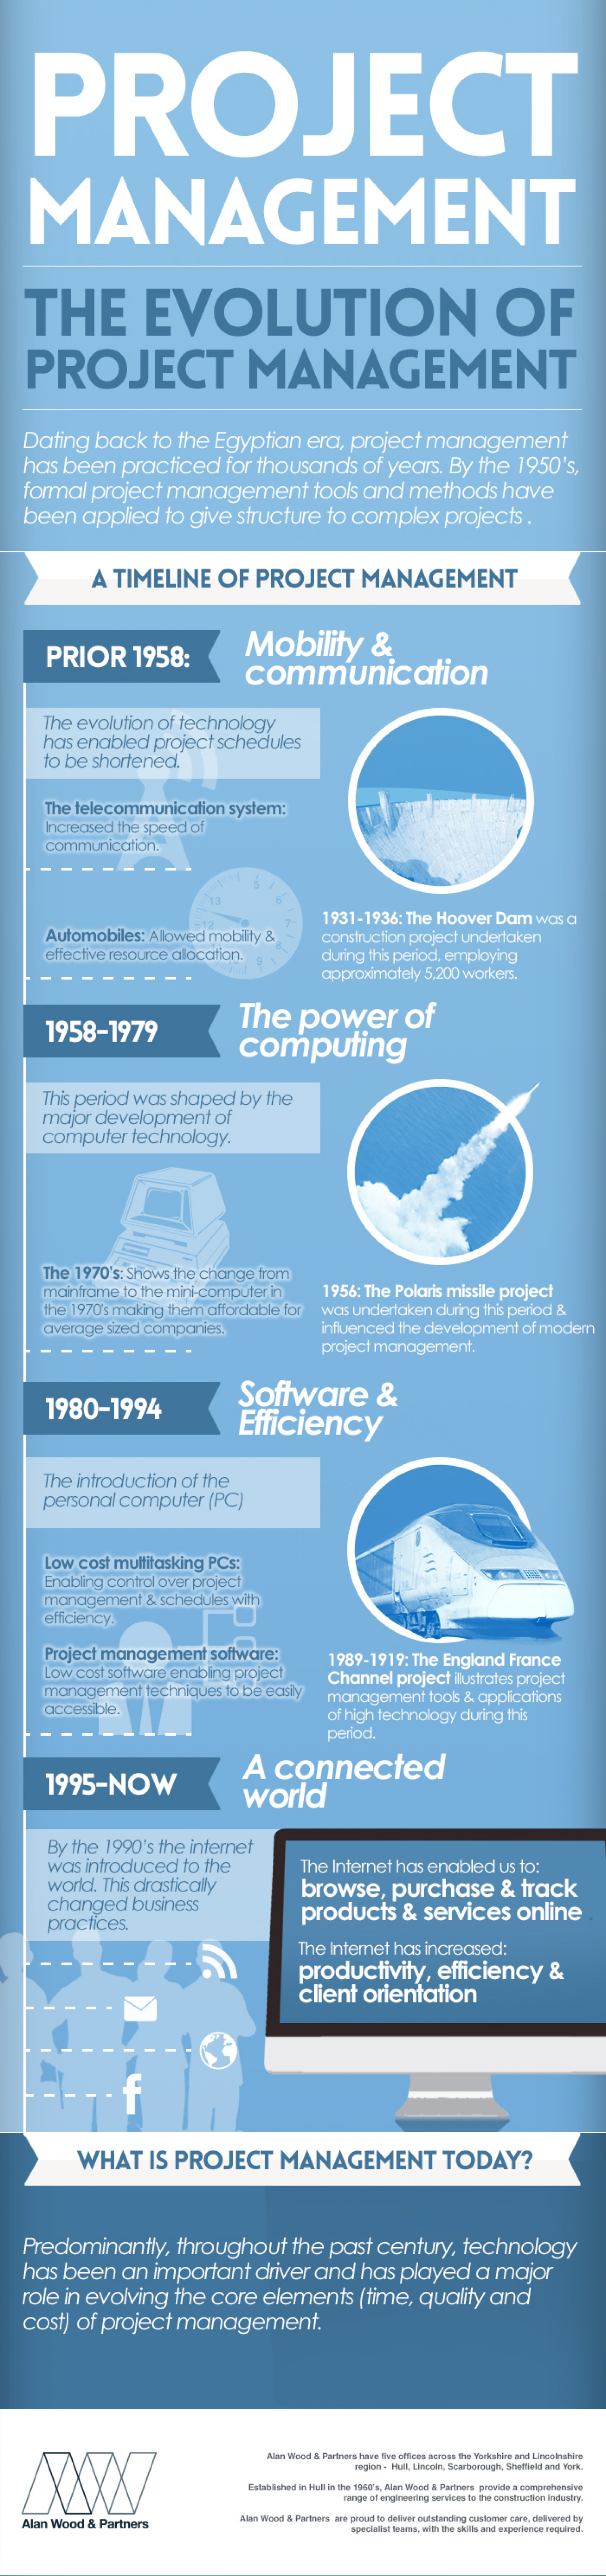 THE EVOLUTION OF PROJECT MANAGEMENT Infographic